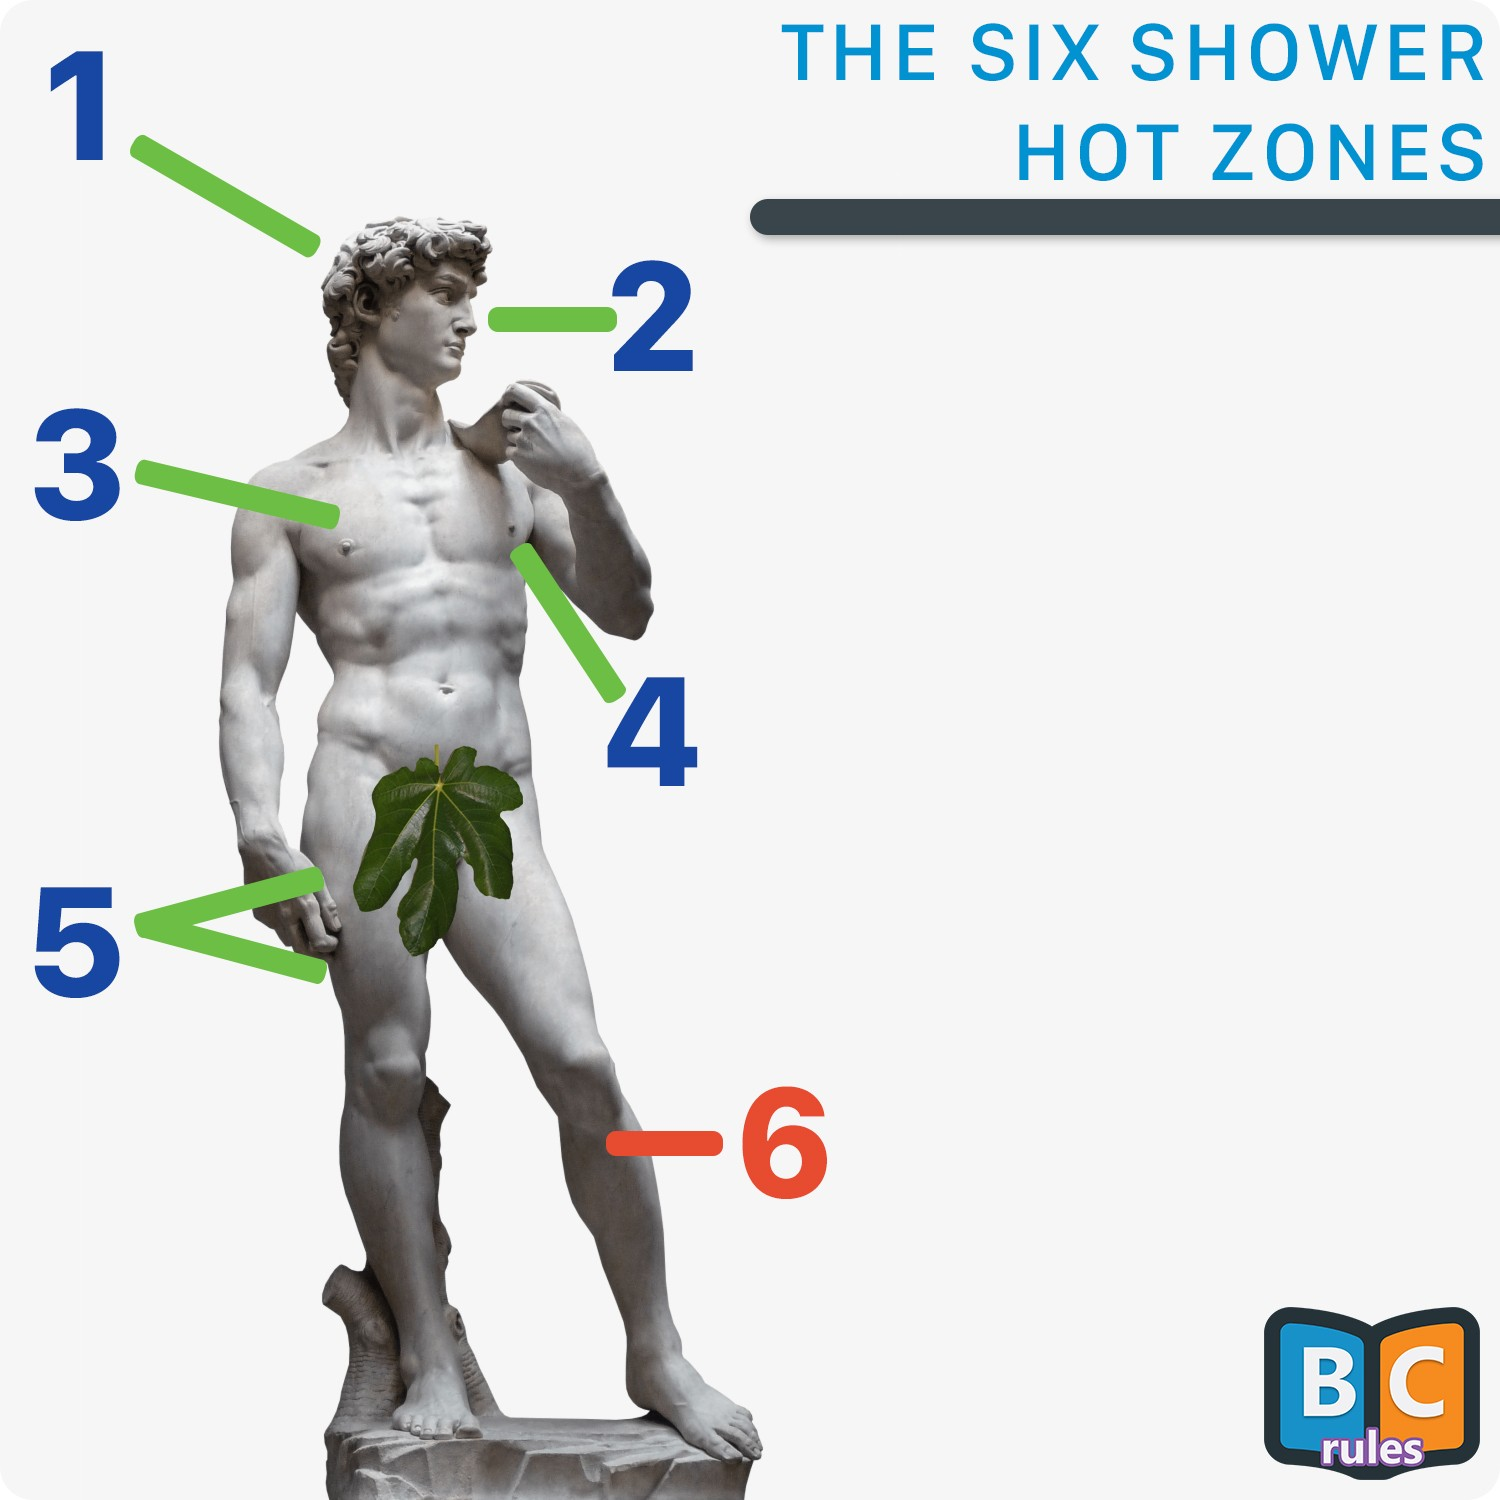 The Six Shower Hot Zones